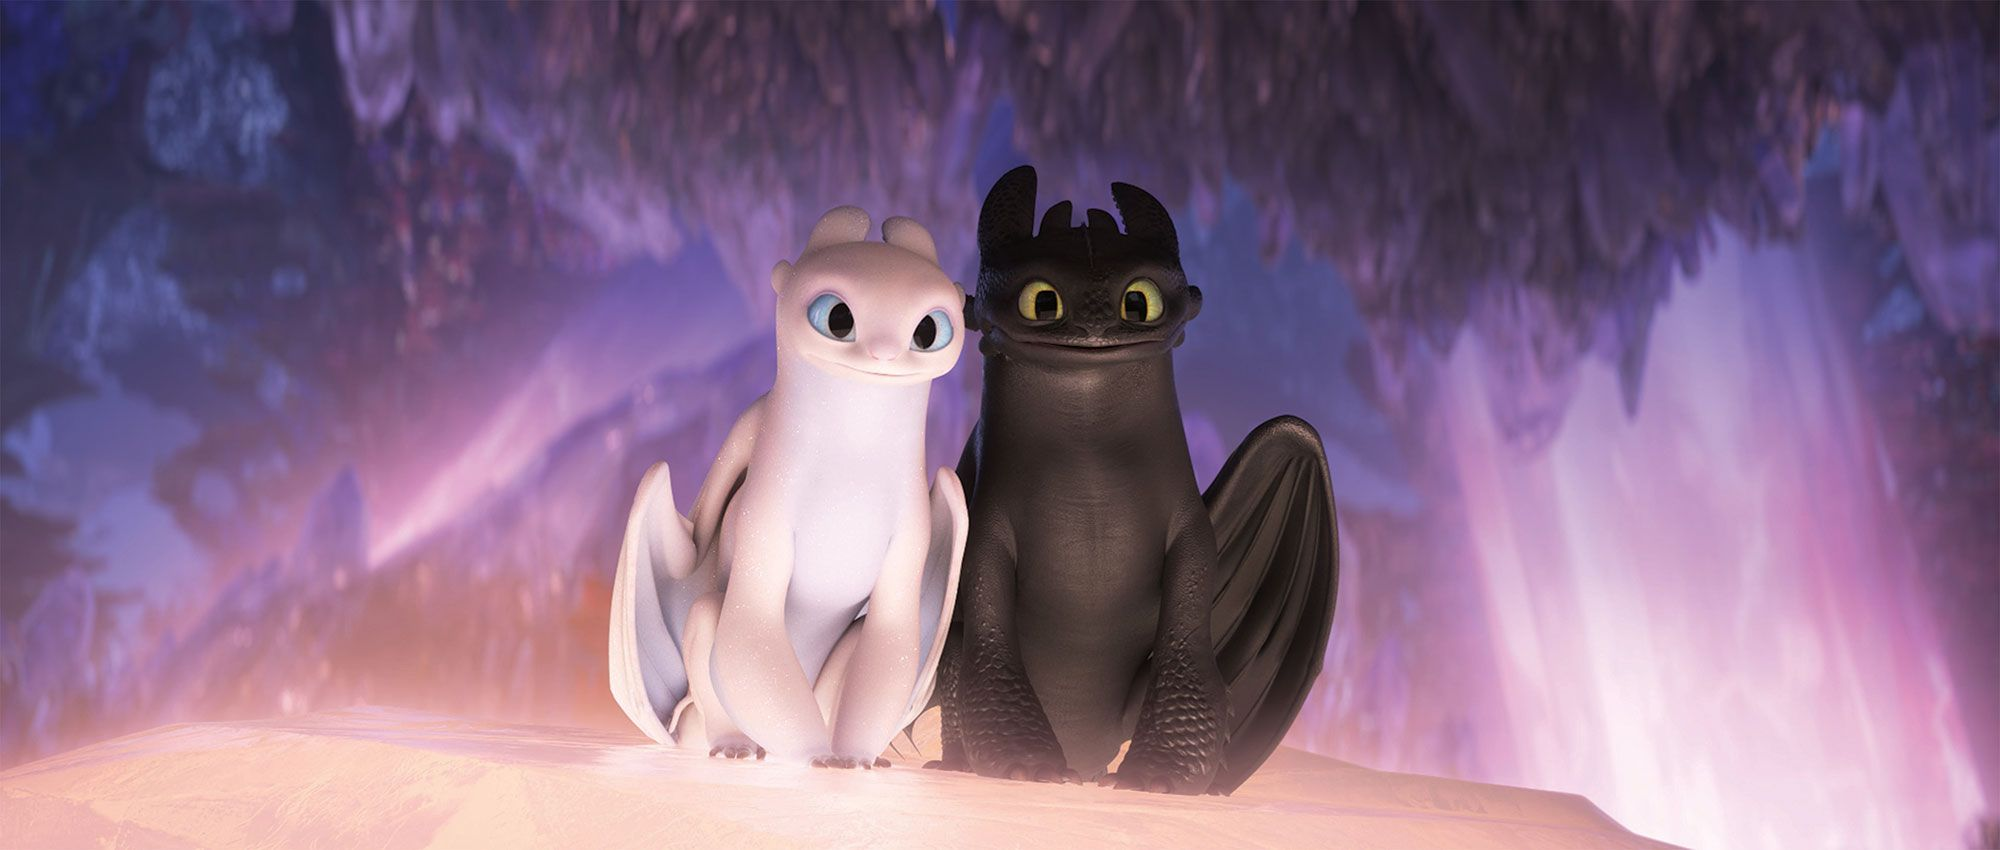 How to Train Your Dragon 3 Blu-ray Brings the Trilogy Home